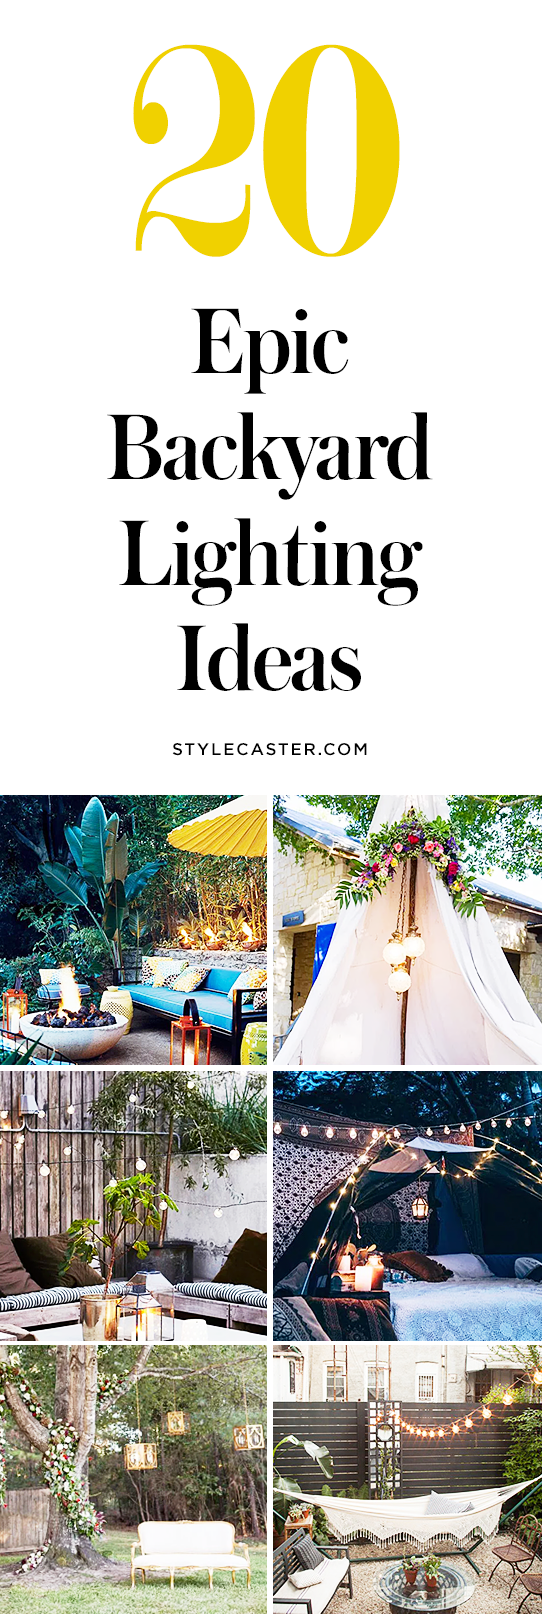 20 Epic Backyard Lighting Ideas to Inspire your Patio Makeover | Outdoor Lighting | @stylecaster